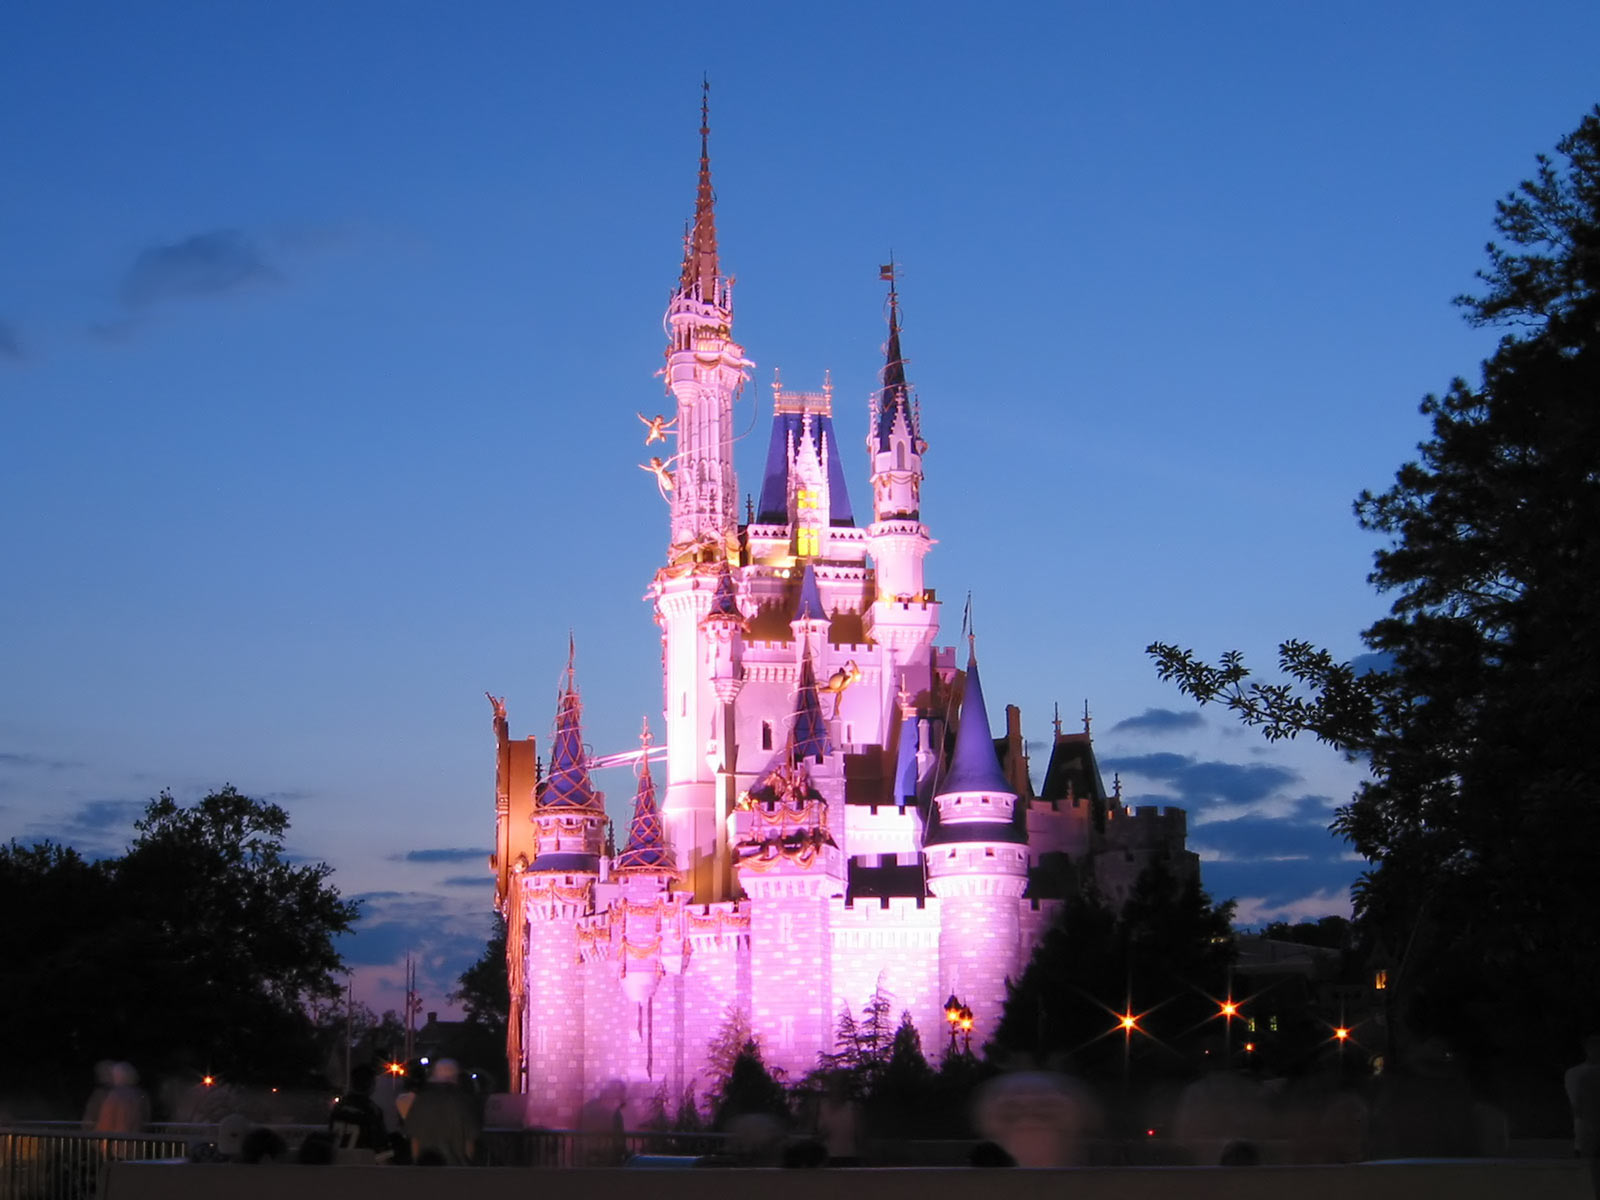 Disney Castle Wallpaper 902 Hd Wallpapers in Cartoons   Imagescicom 1600x1200